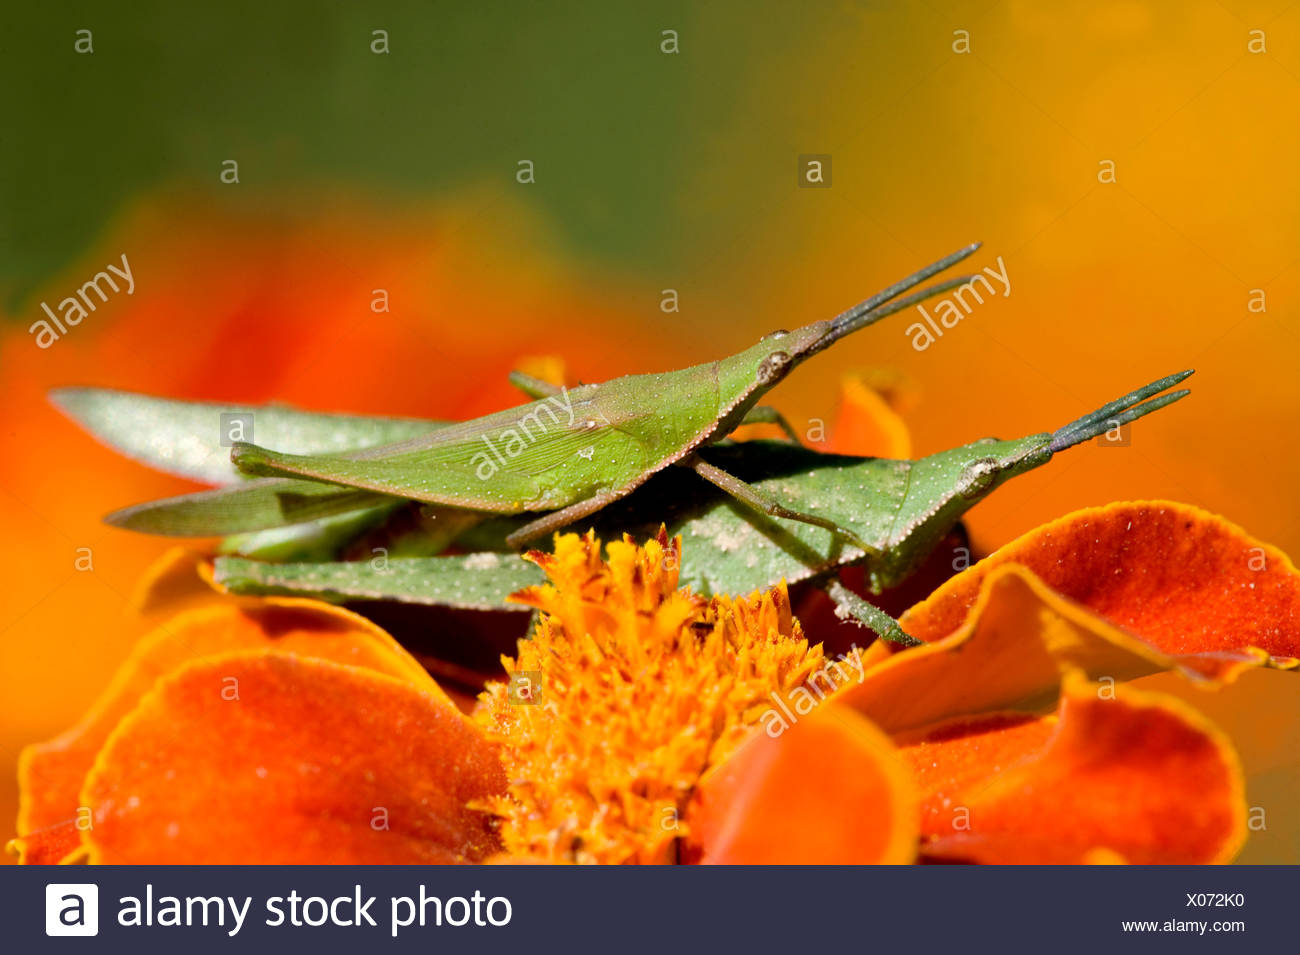 Pair of Grasshoppers mating India - Stock Image